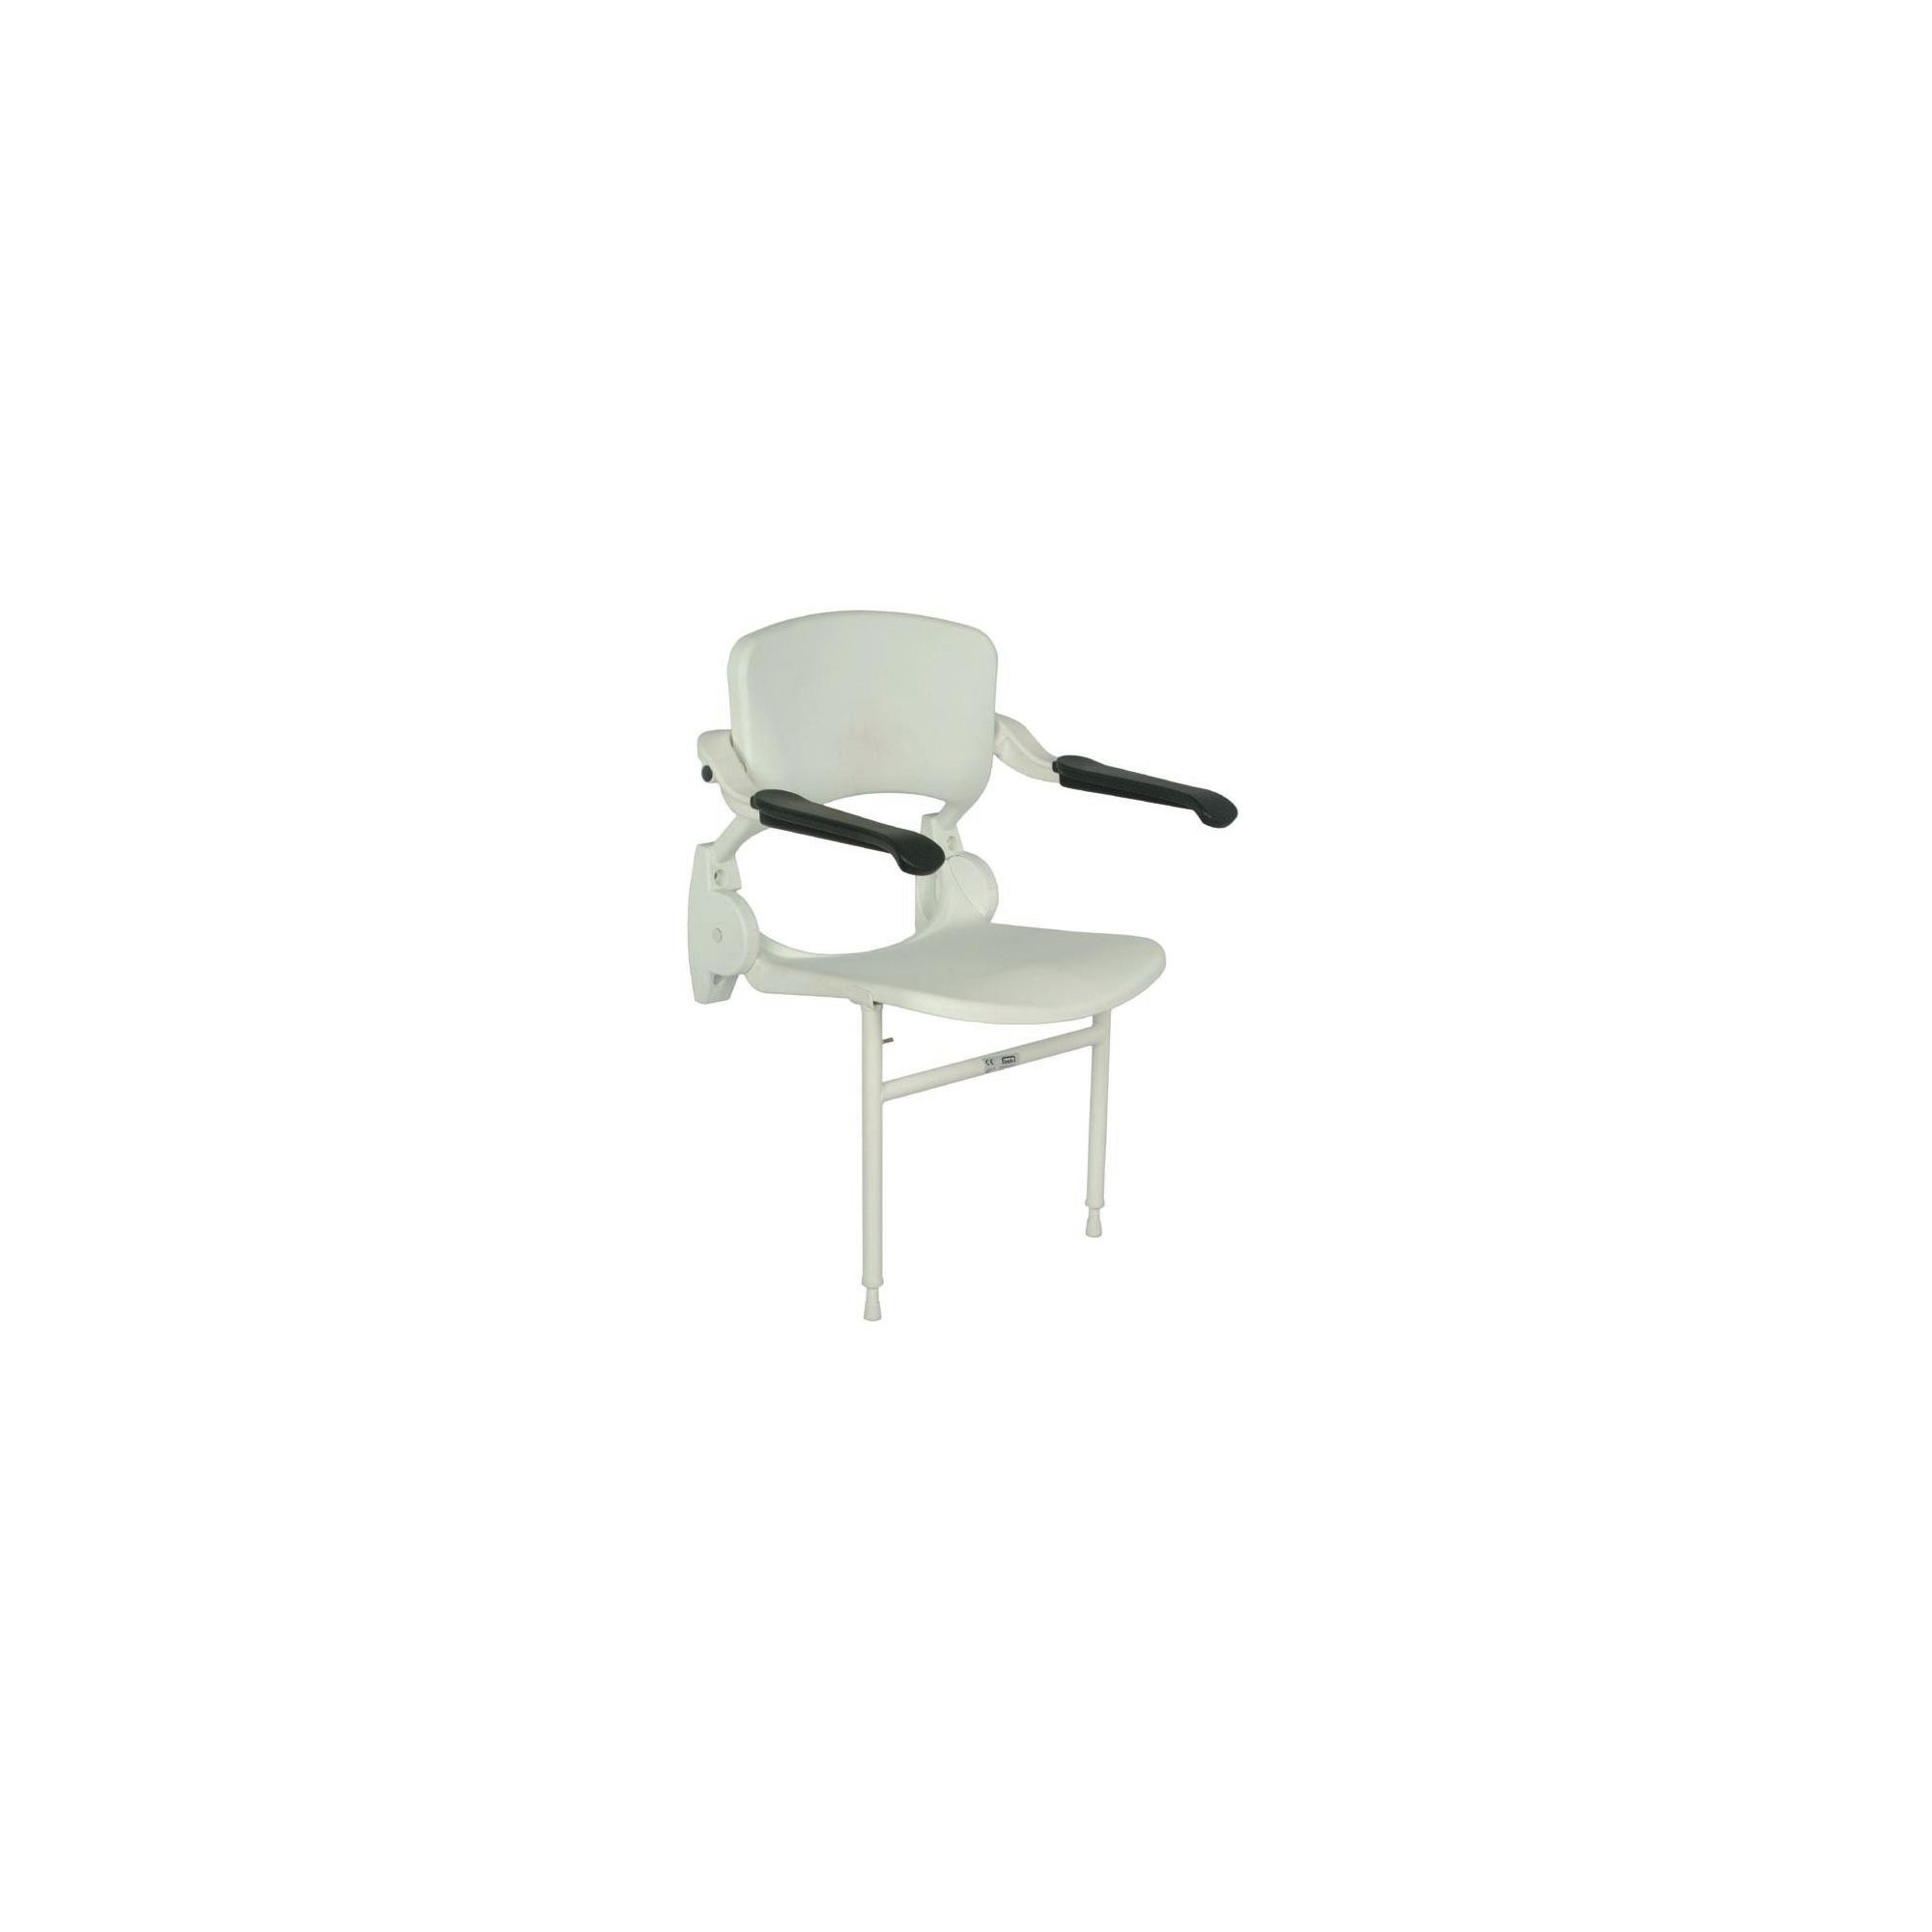 Impey Deluxe Ergonomically-Curved Shower Seat with Support Legs at Tesco Direct